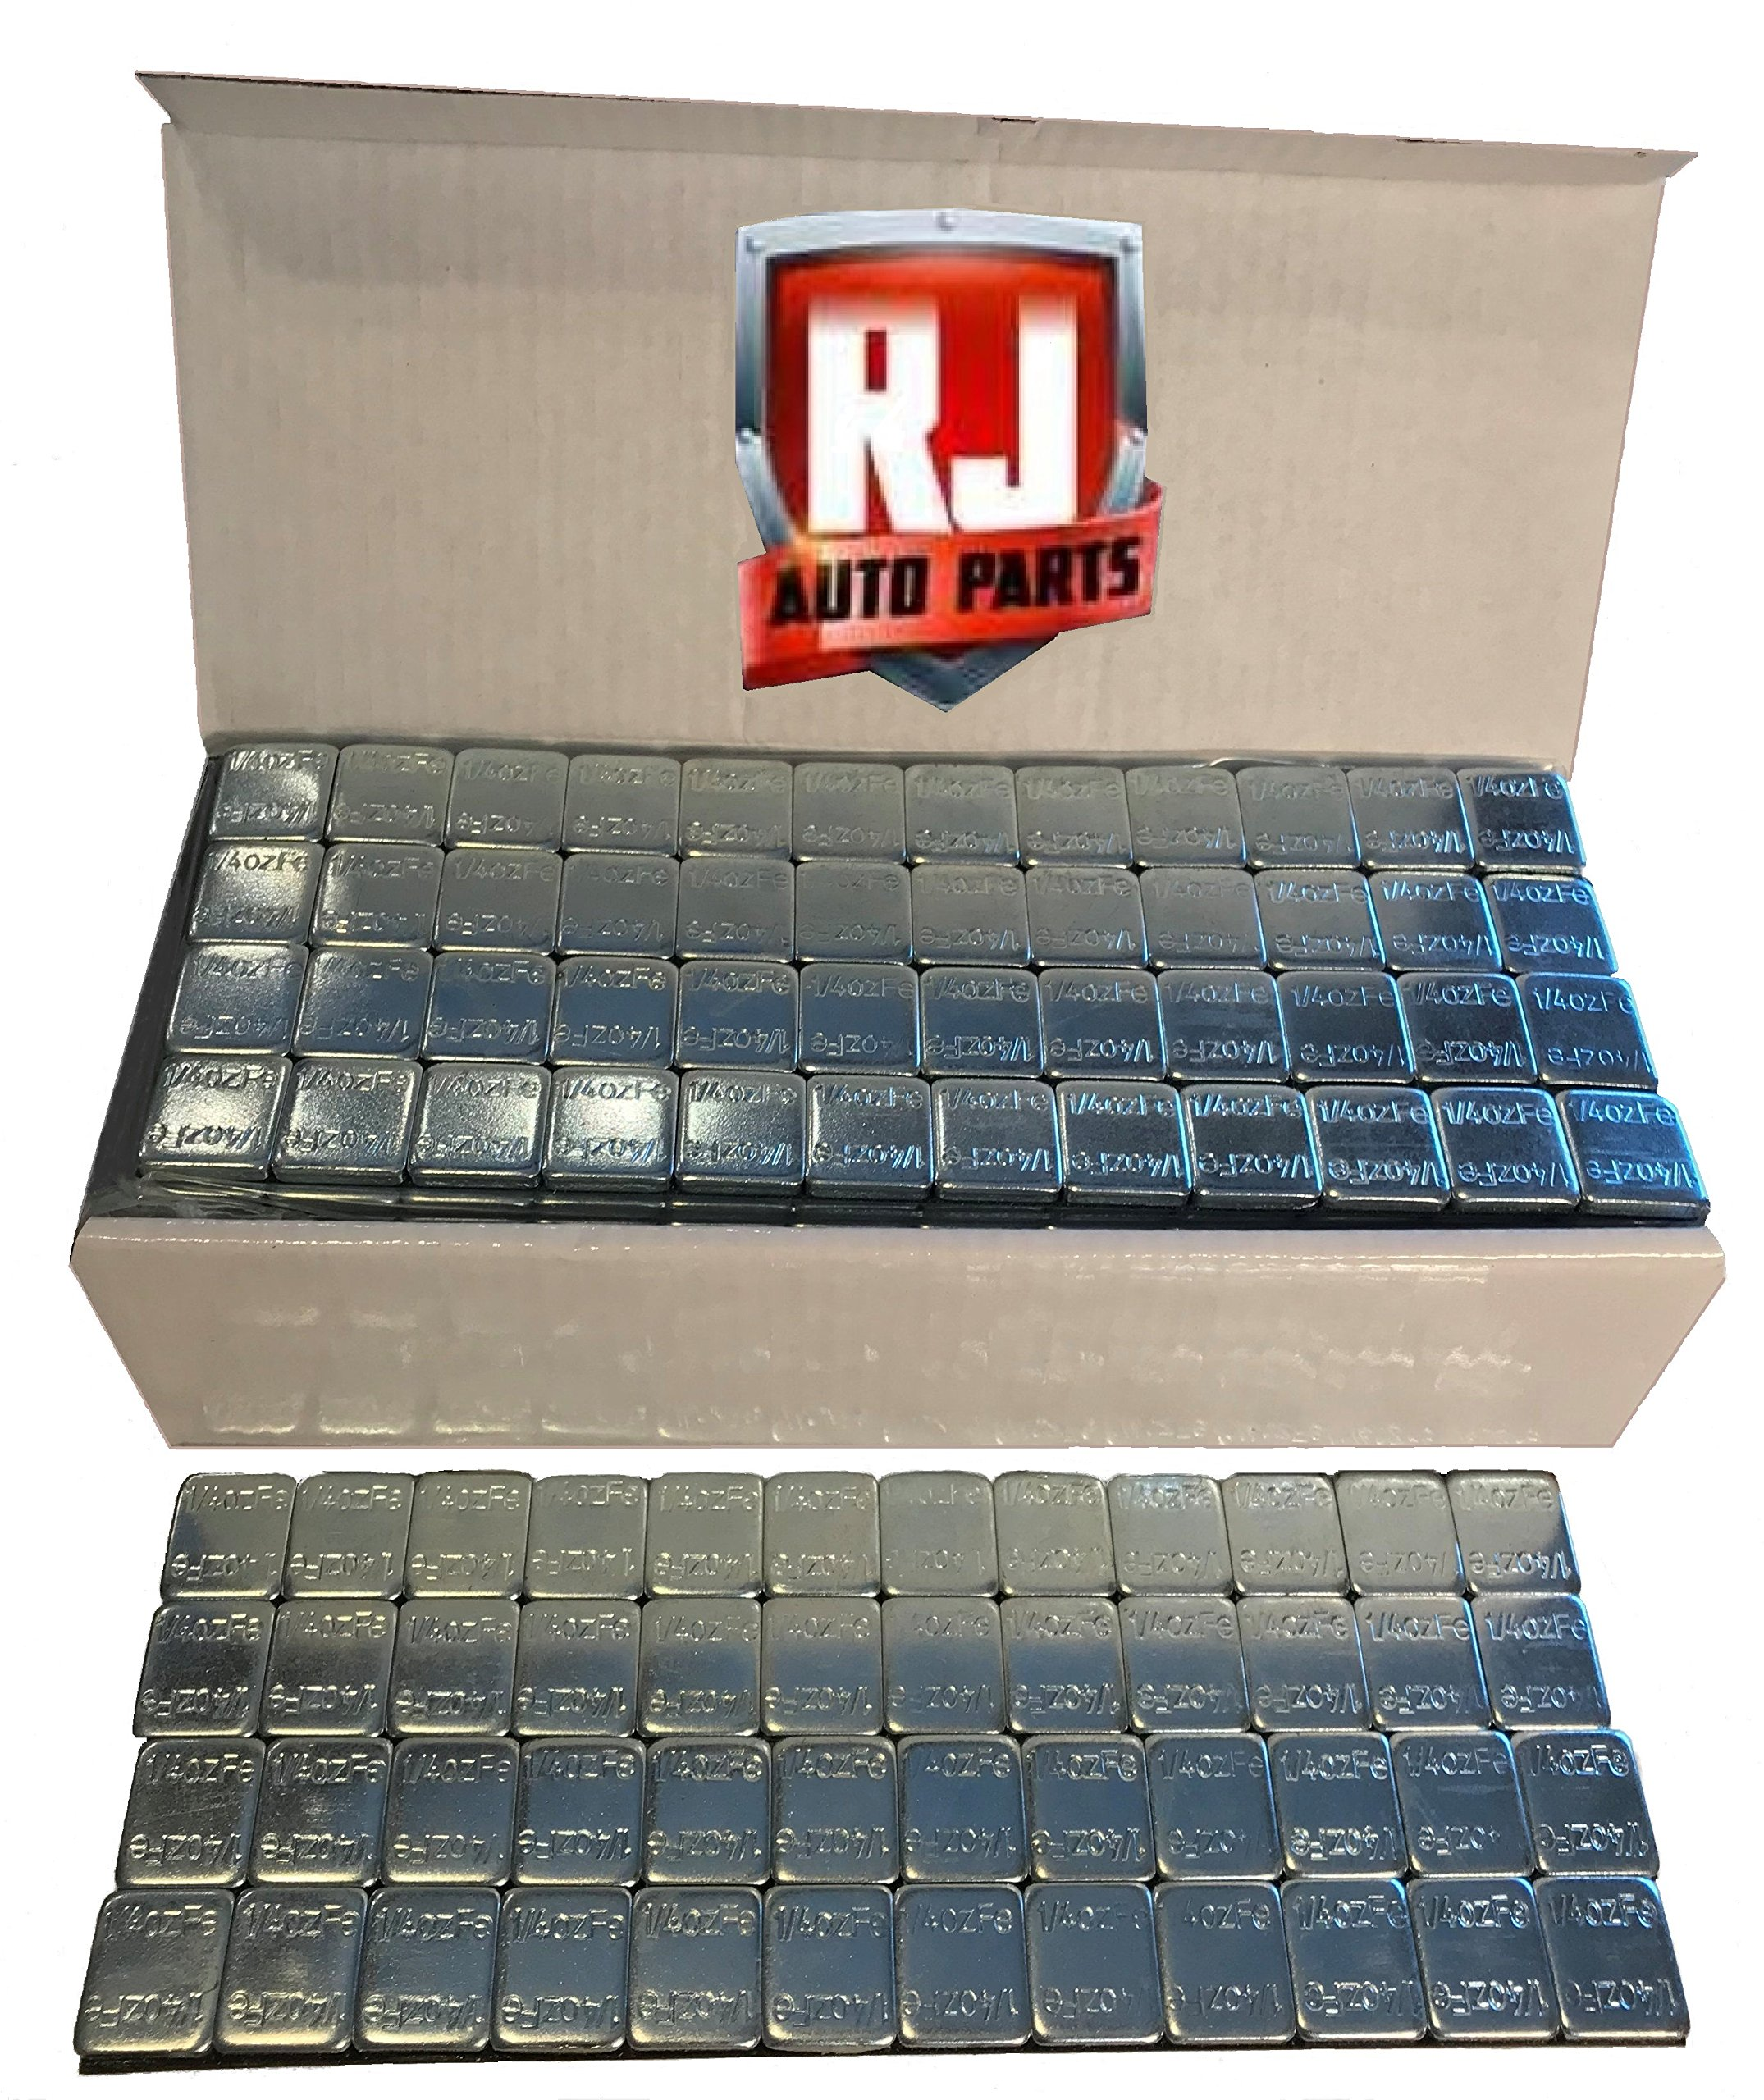 6 Boxes Wheel Weights Zinc Plated .25 oz. Stick-on Adhesive Tape (54 lbs) 3456 Pieces by RJ Auto Parts